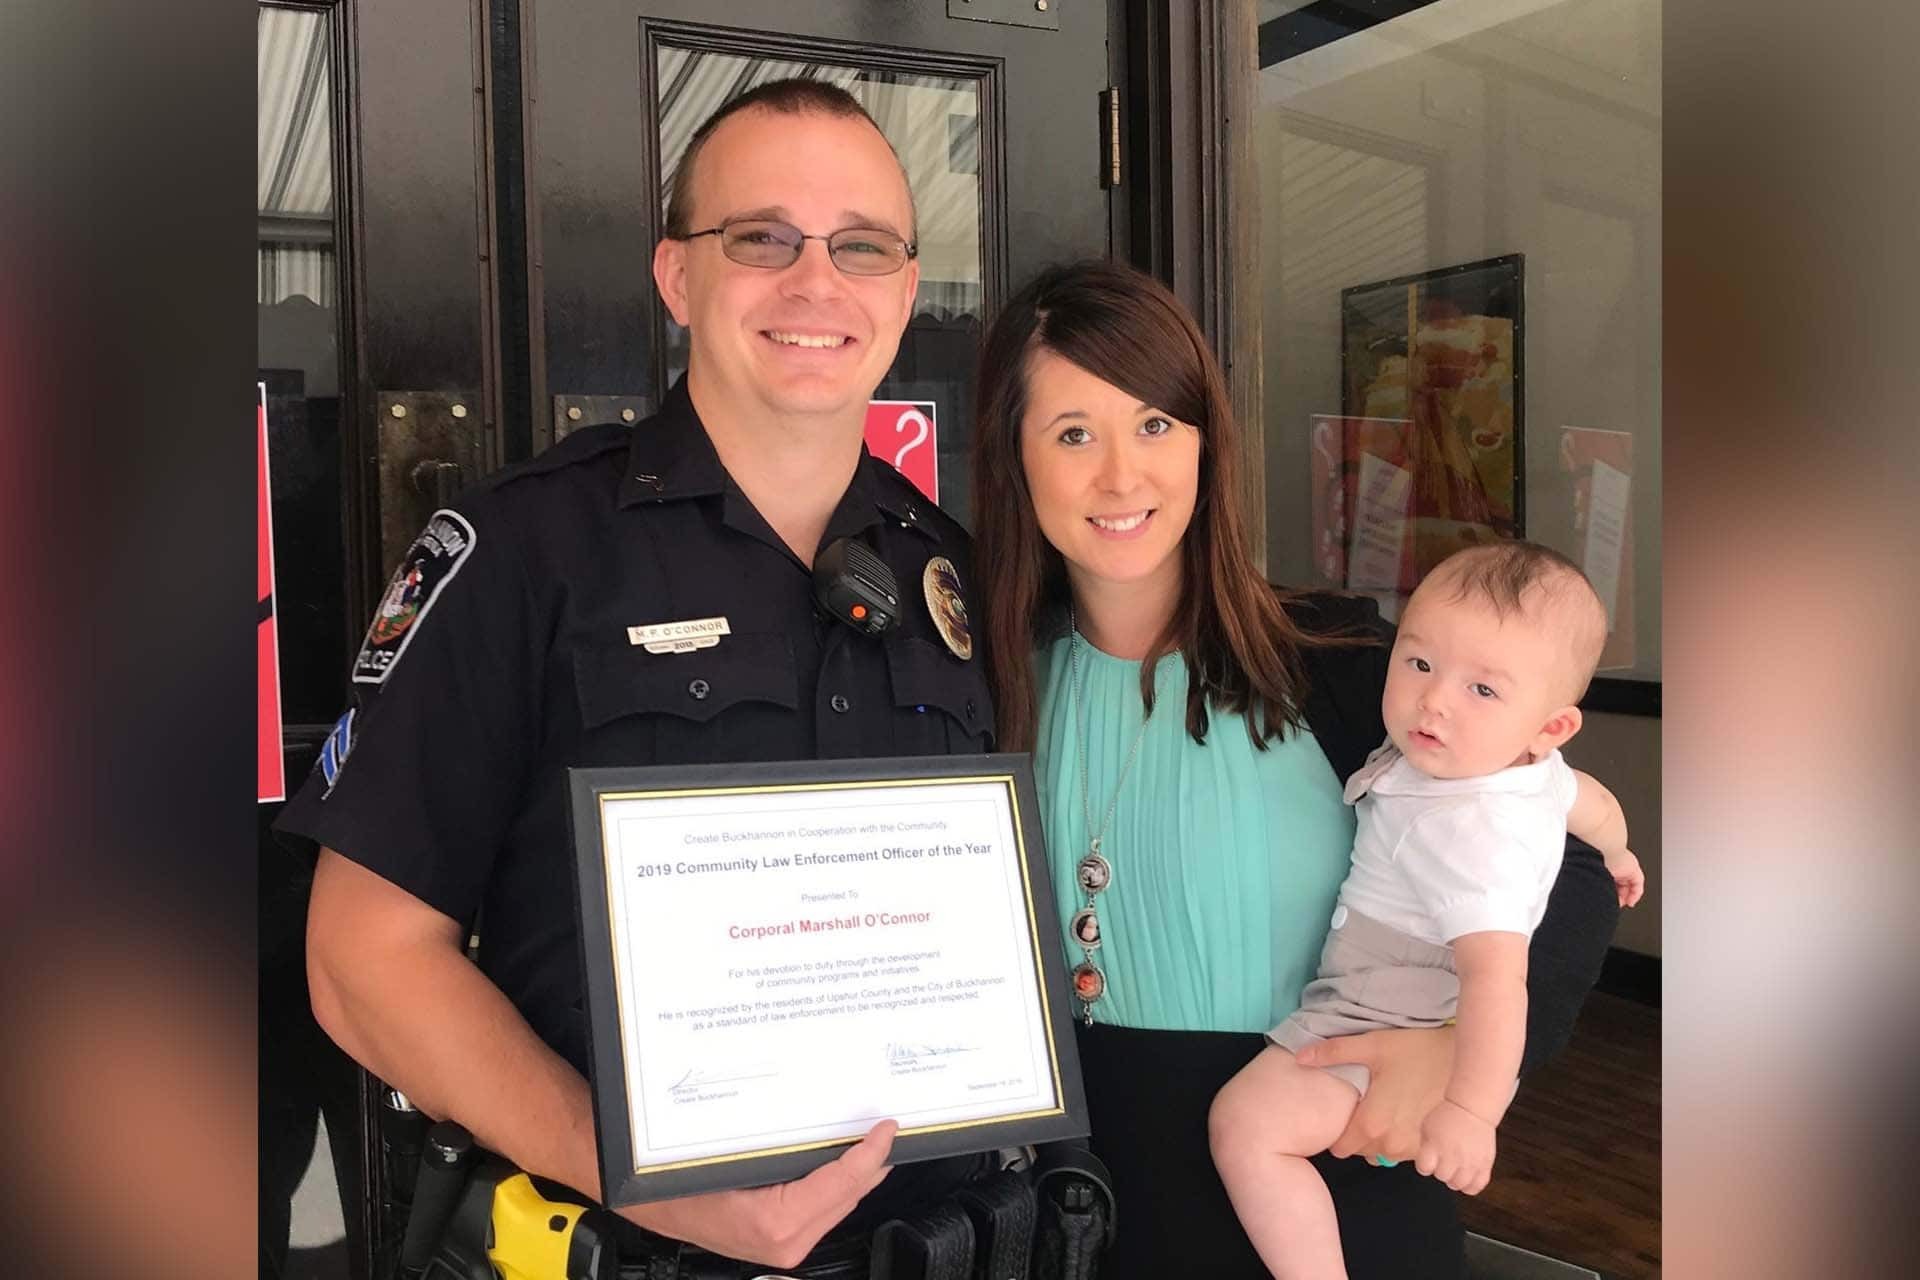 Buckhannon Police Officer Corporal Marshall O'Connor, wife, Tiffany O'Connor, and son, Jayden.